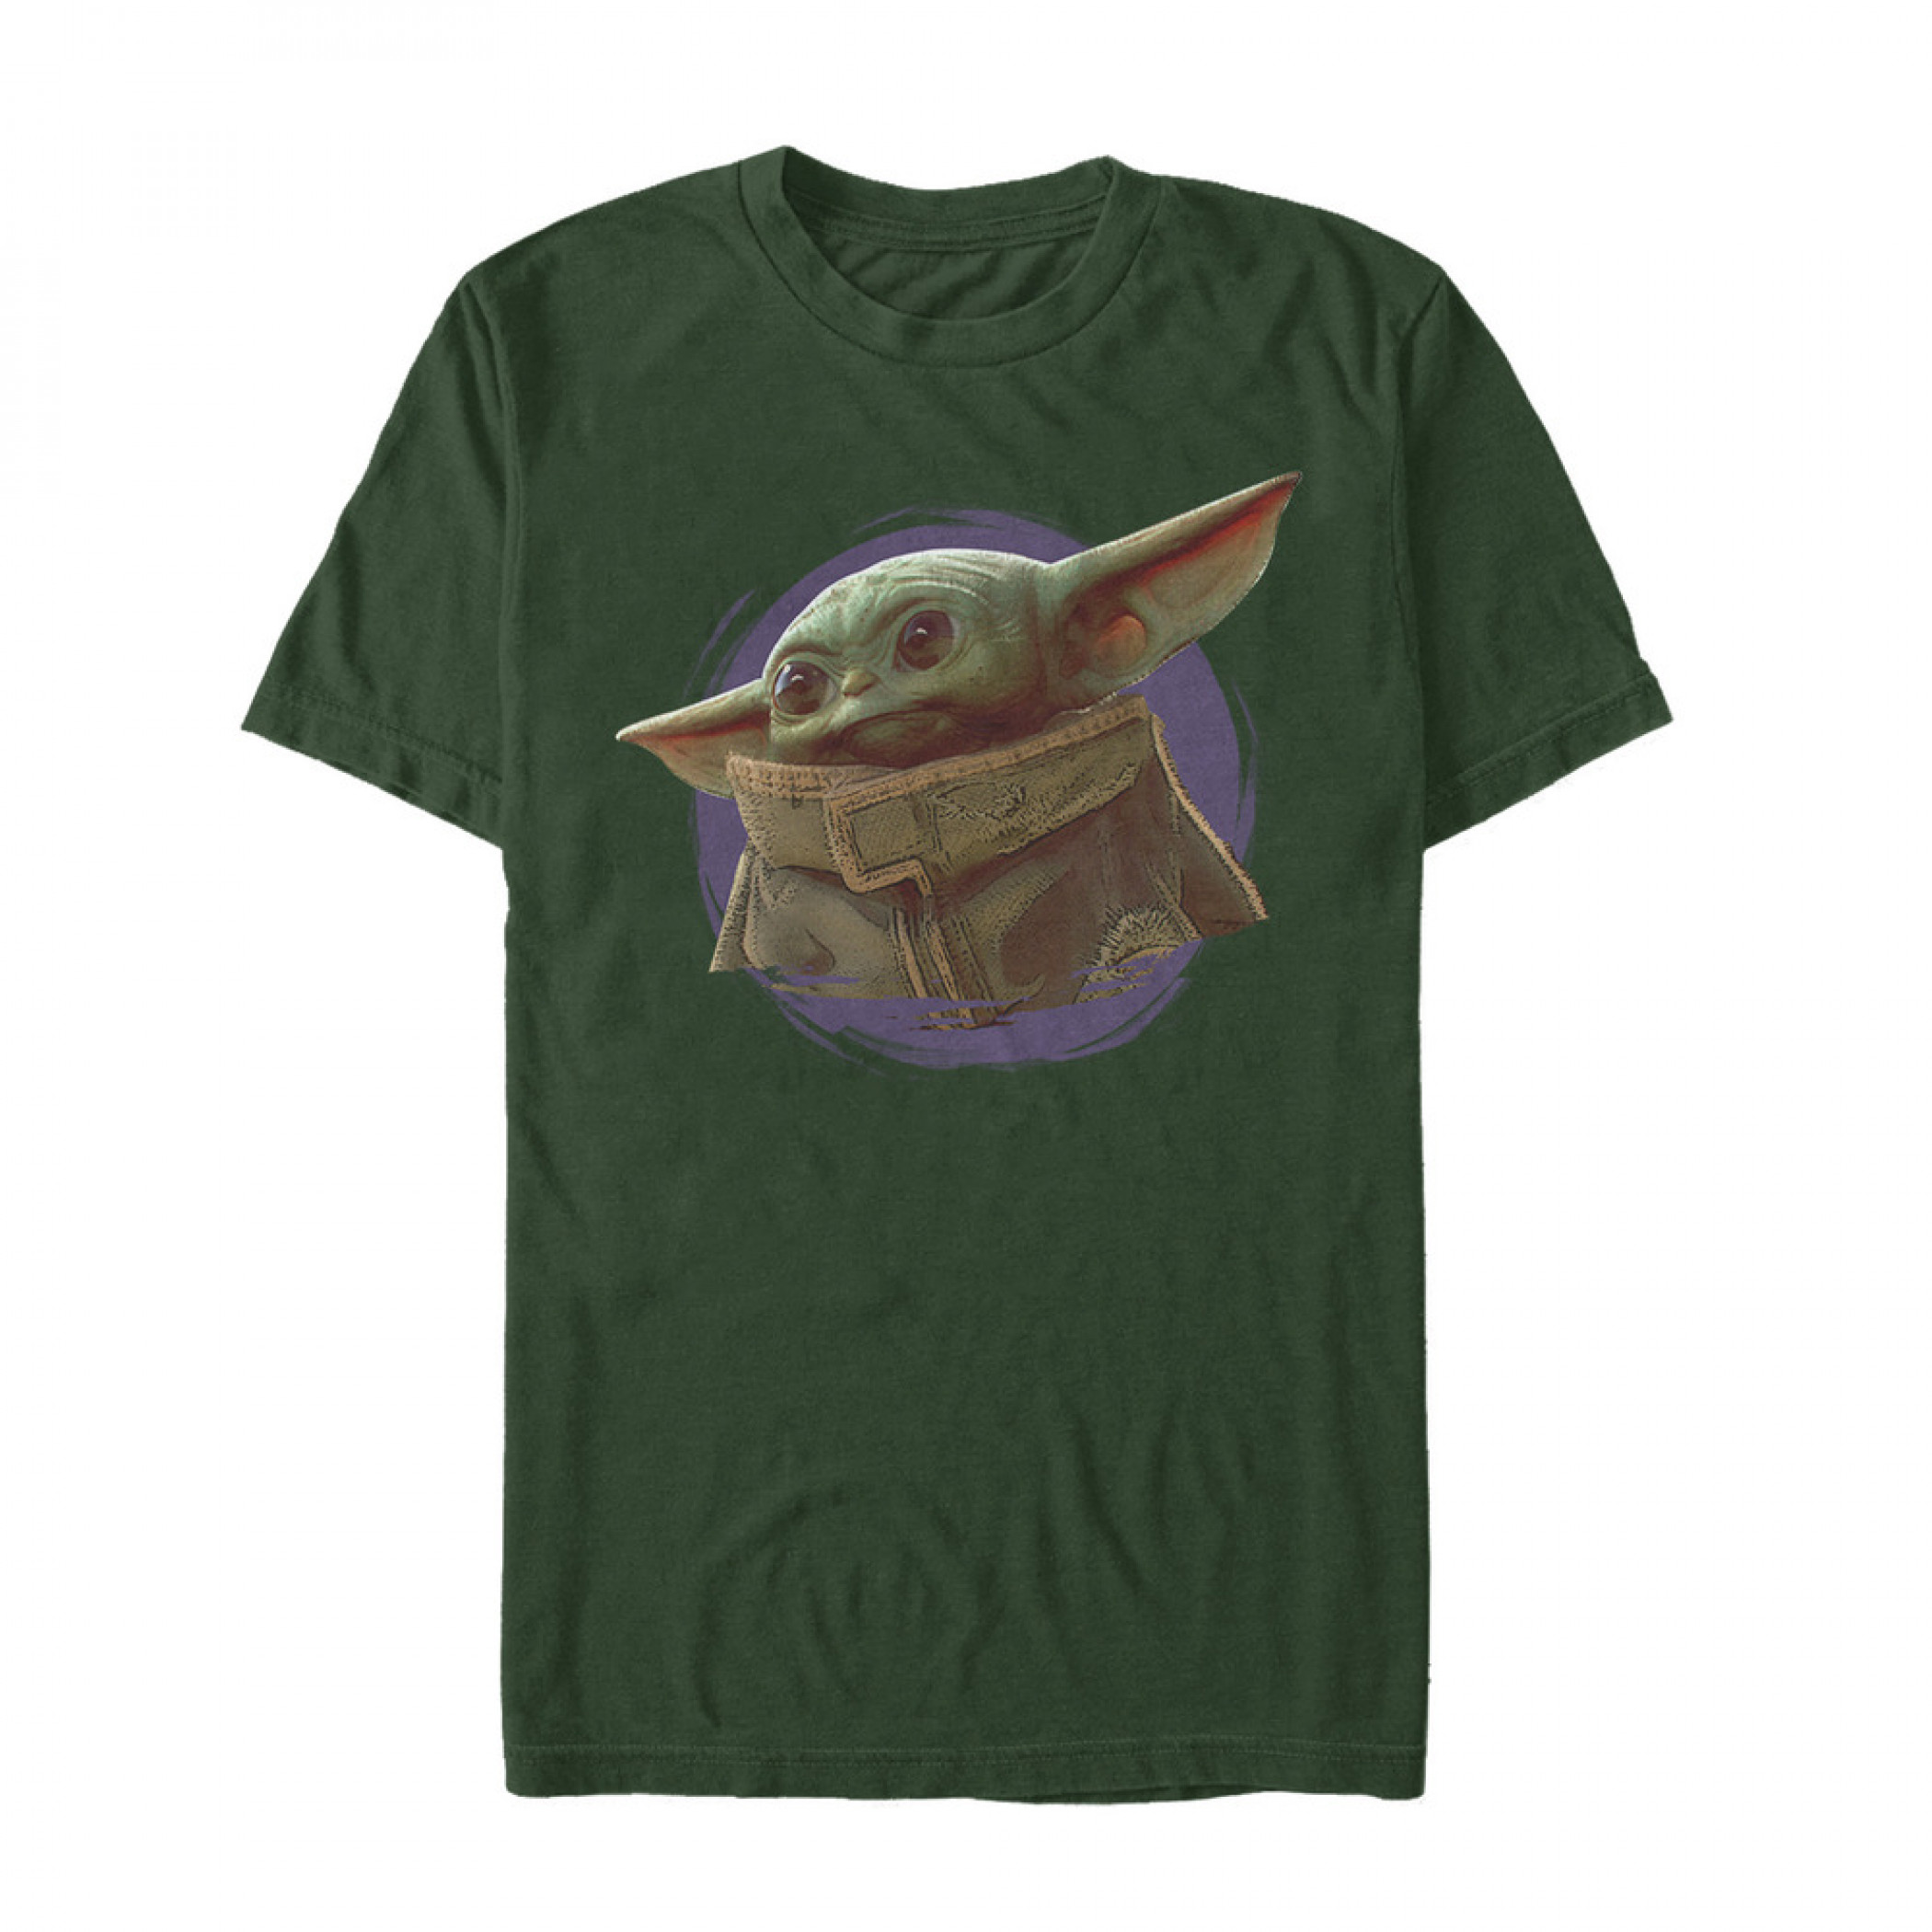 The Mandalorian The Child Forest Green T-Shirt